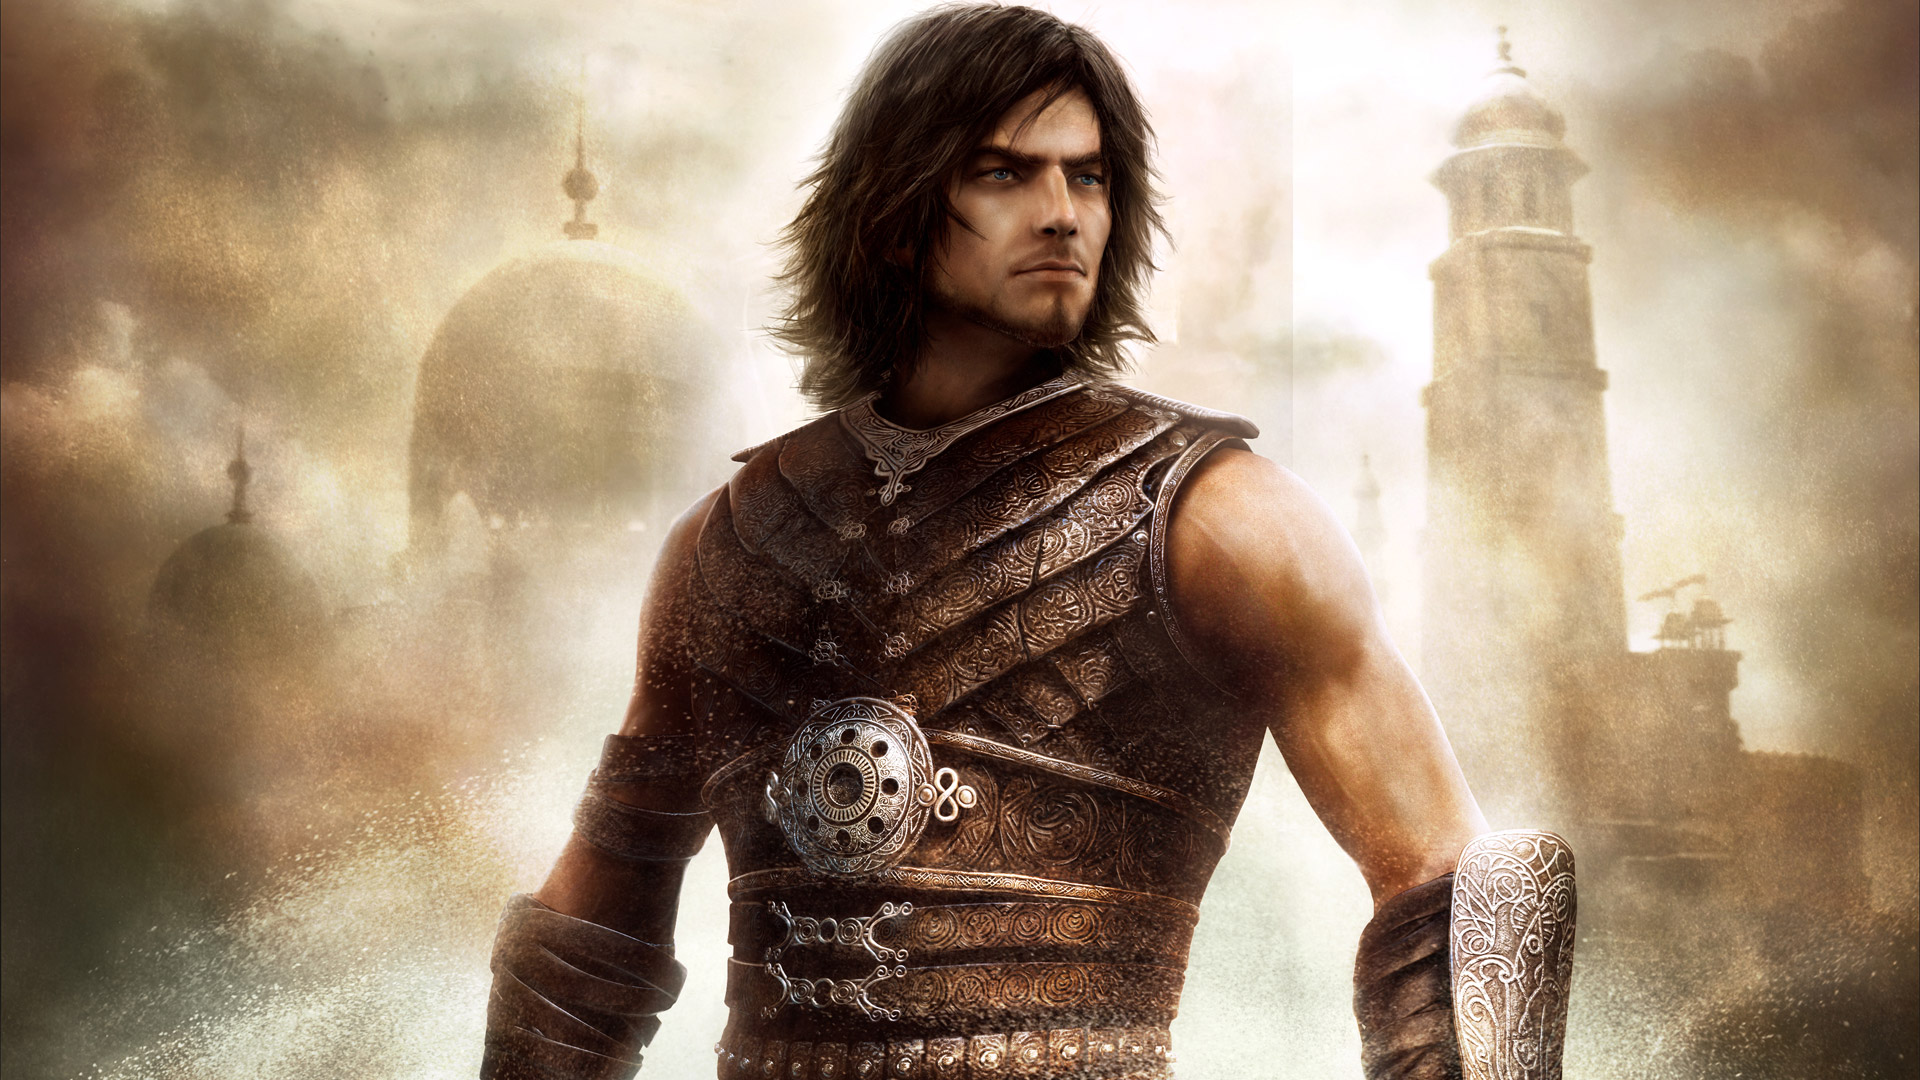 Free Prince of Persia: The Forgotten Sands Wallpaper in 1920x1080